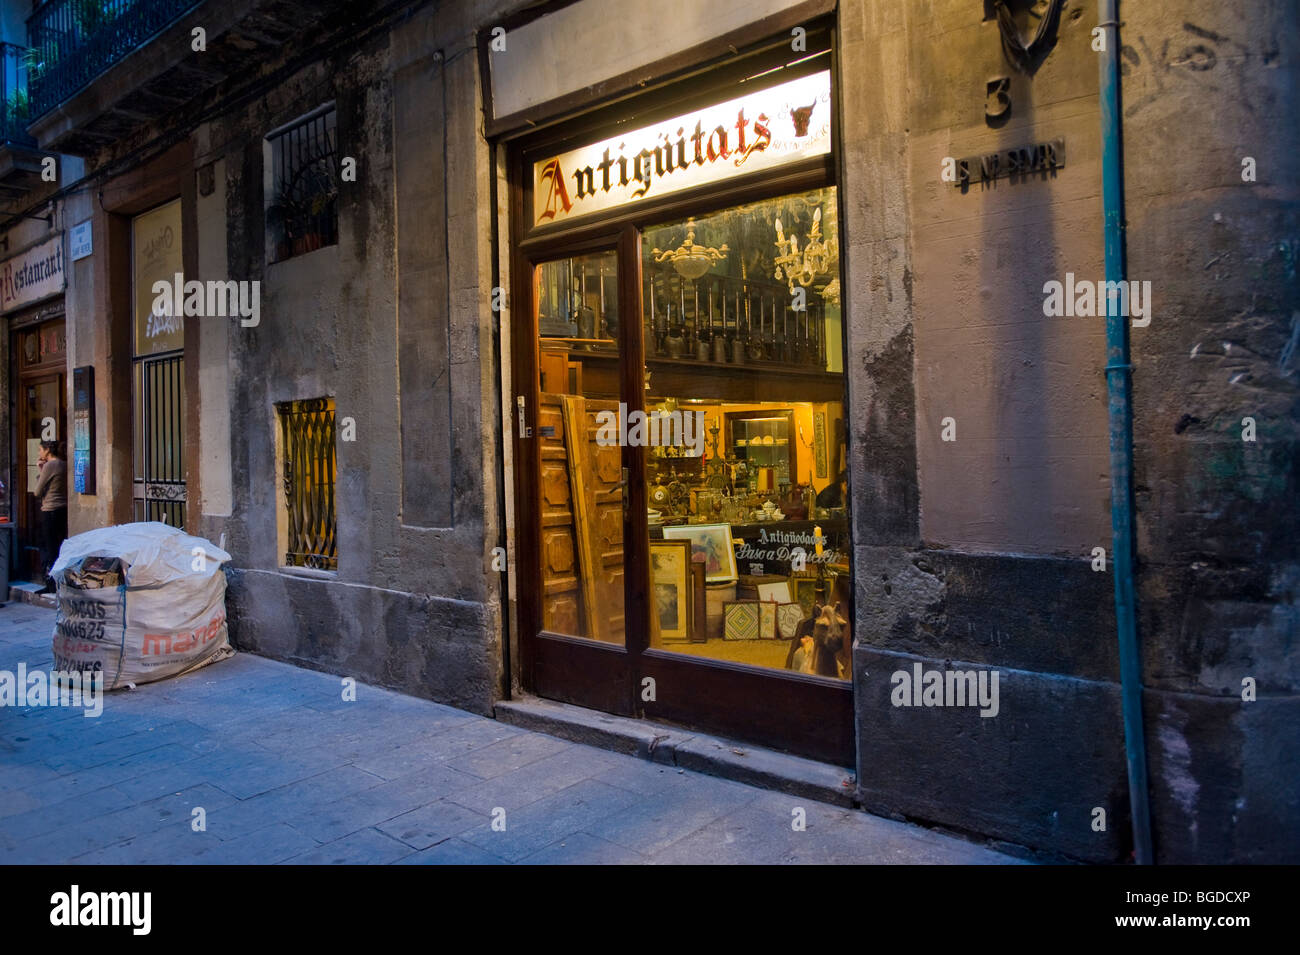 Antiques shop, Barri Gotic, Barcelona, Catalonia, Spain, Europe Stock Photo